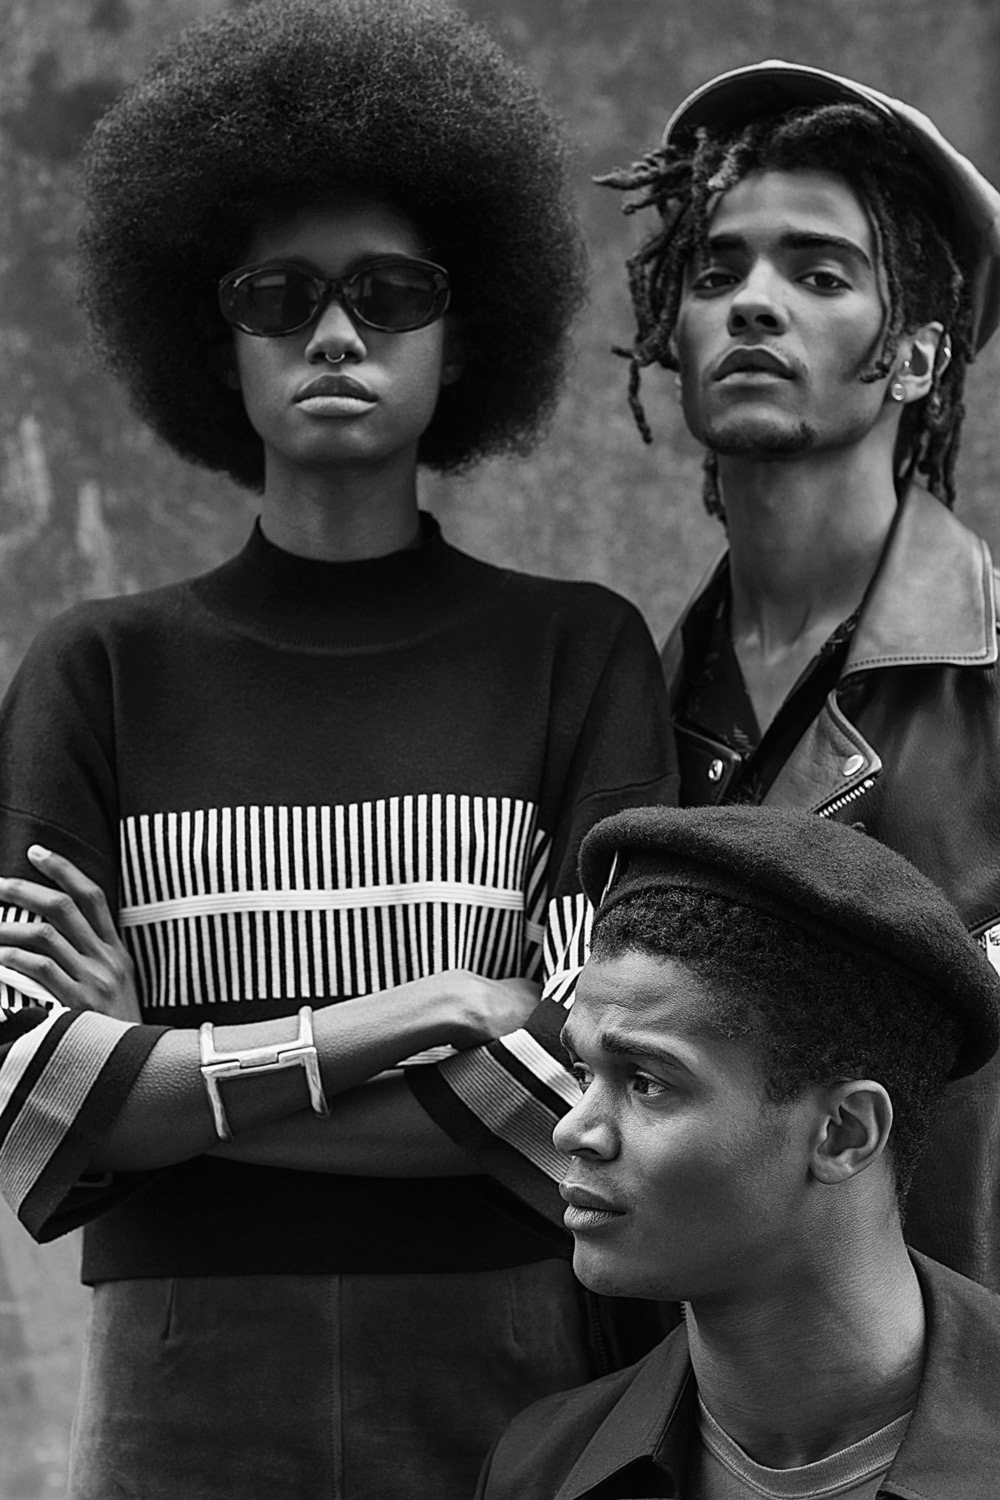 Crystal Noreiga, O'Shea Robertson, and Marcus Sivyer photographed by Adam Fussell and styled by Geoff K. Cooper and Kieron Watts. Casting by Marqee Miller. Sagaboi Book - Come Through.